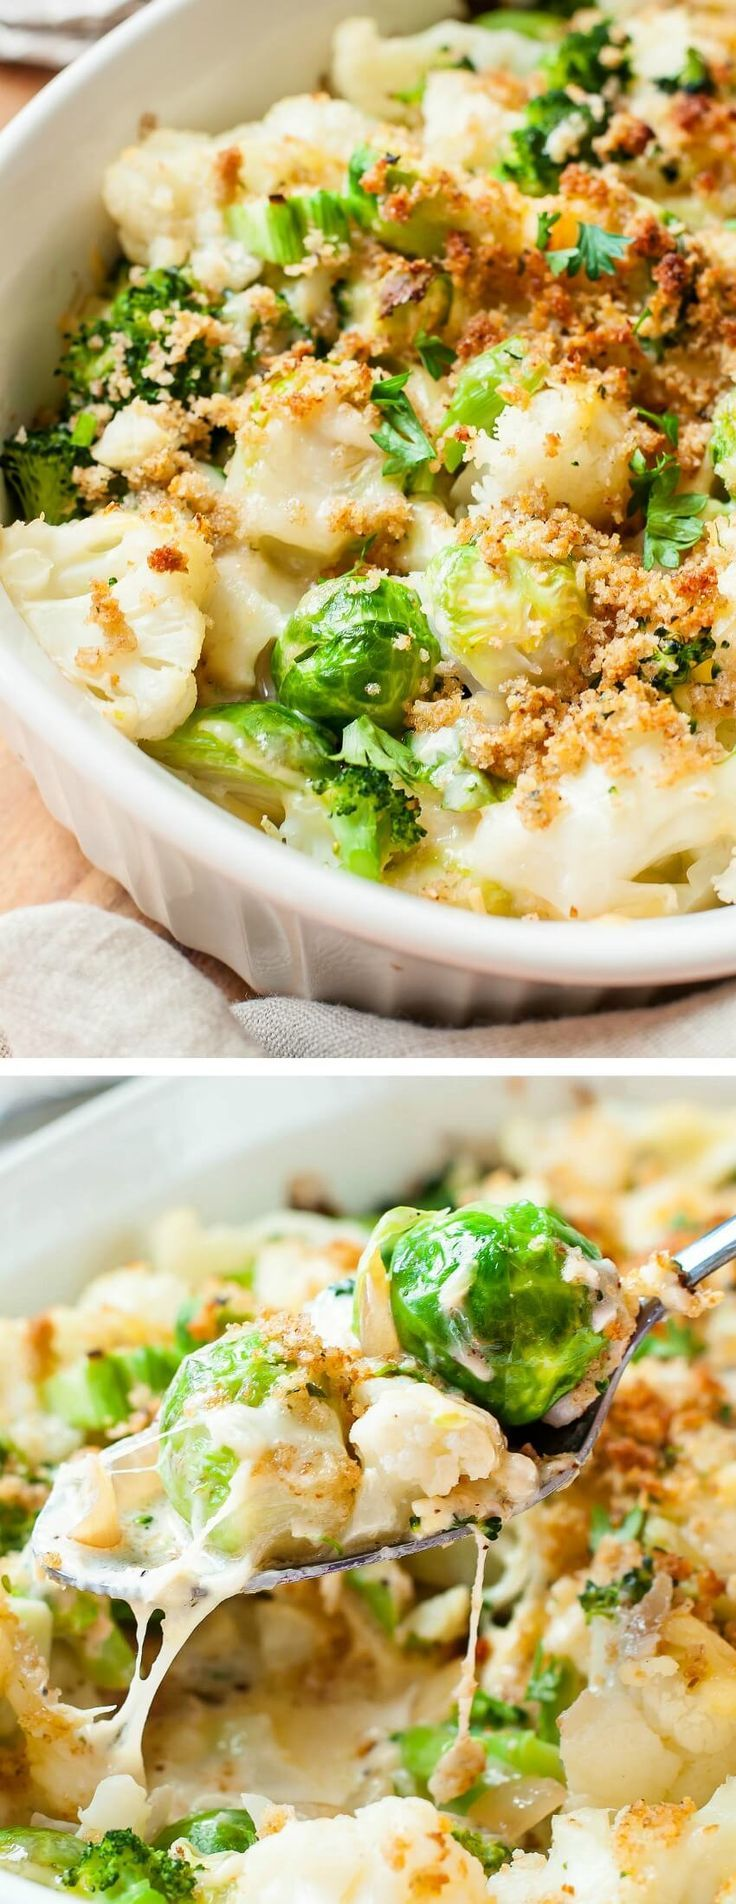 Cheesy Broccoli, Cauliflower, and Brussels Sprouts blanked in the most amazing…